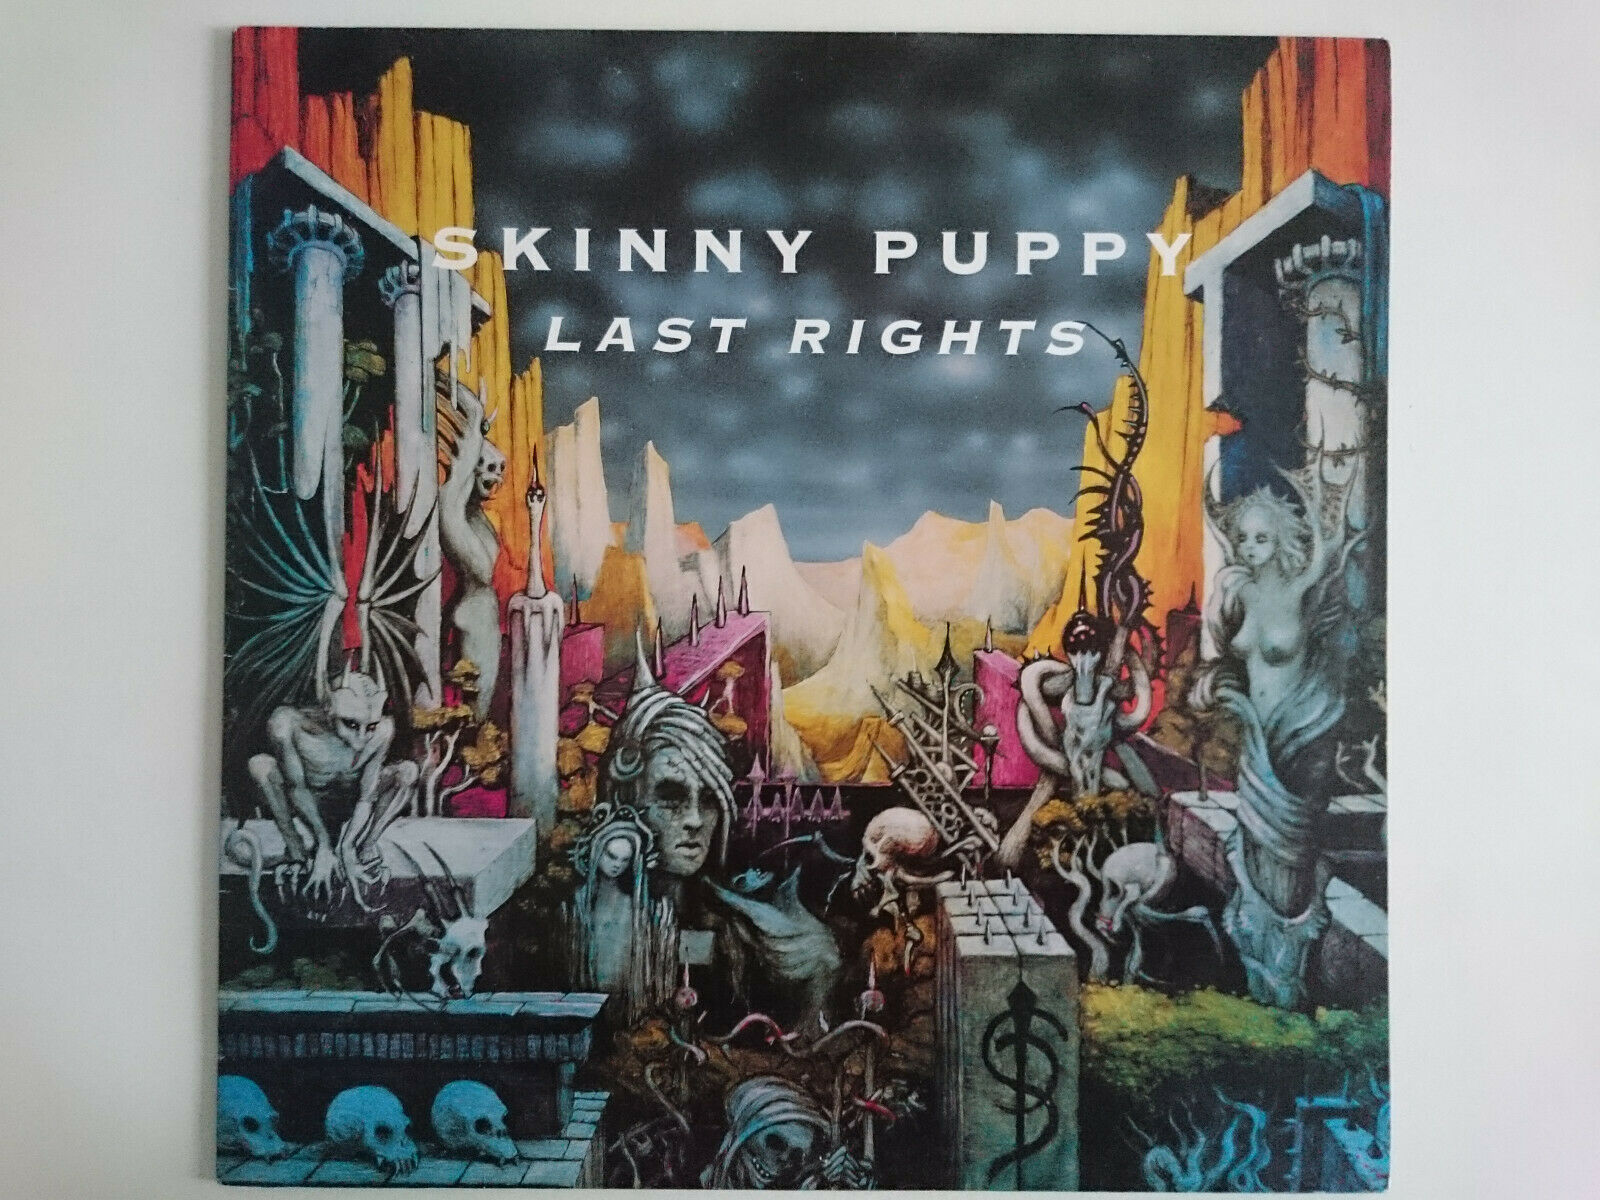 SKINNY PUPPY POISON LAST RIGHTS CAPITOL 064-7 98037 1 EBM INDUSTRIAL